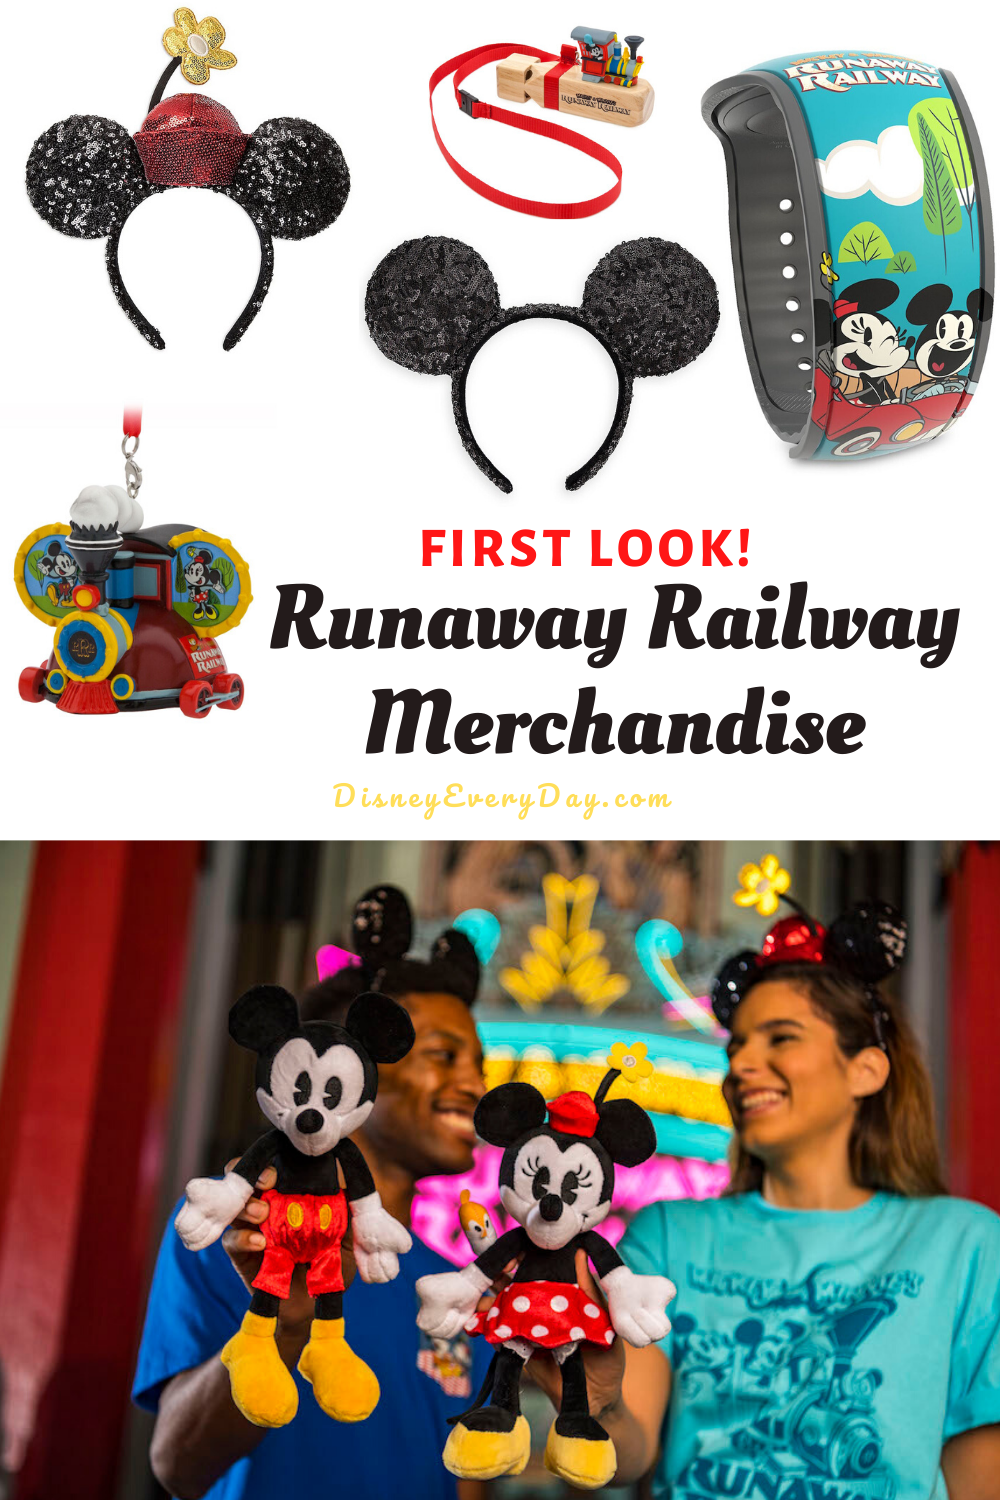 A new collection of Mickey and Minnie merchandise has been released to coincide with the opening of the new Mickey Mouse attraction at Walt Disney World.